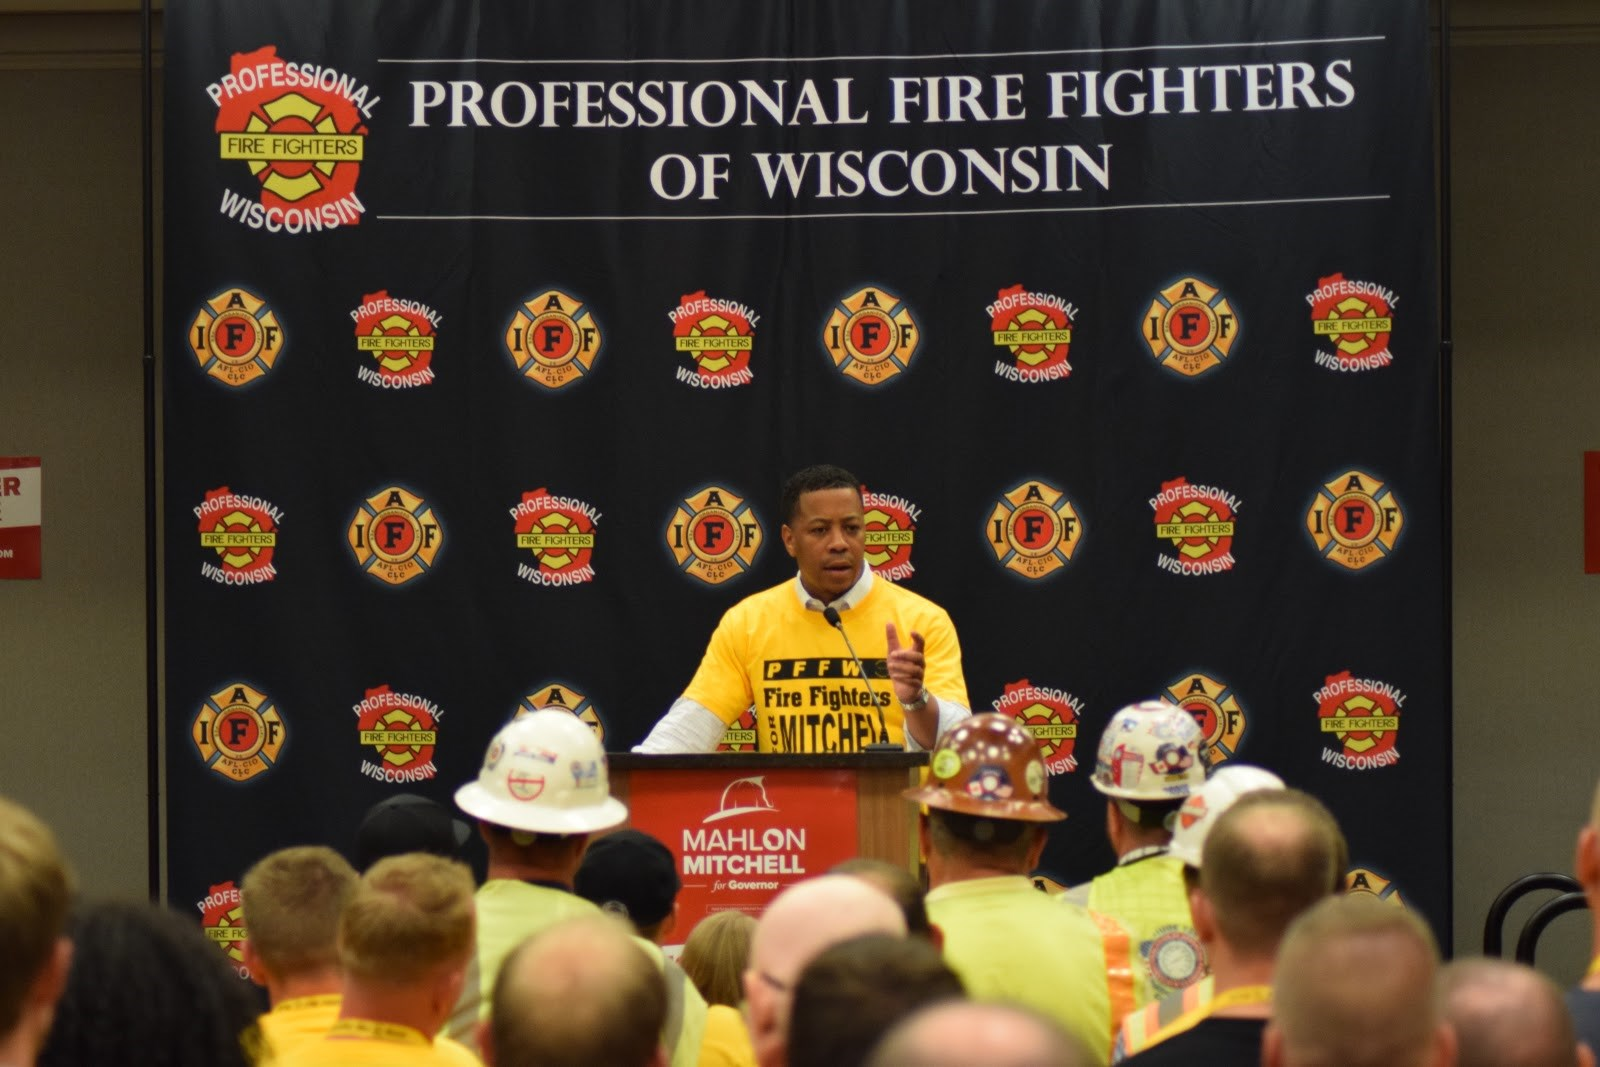 Democratic gubernatorial candidate Mahlon Mitchell speaks to over 200 supporters at Monday rally in Madison. Photo courtesy of Mahlon Mitchell for Wisconsin.